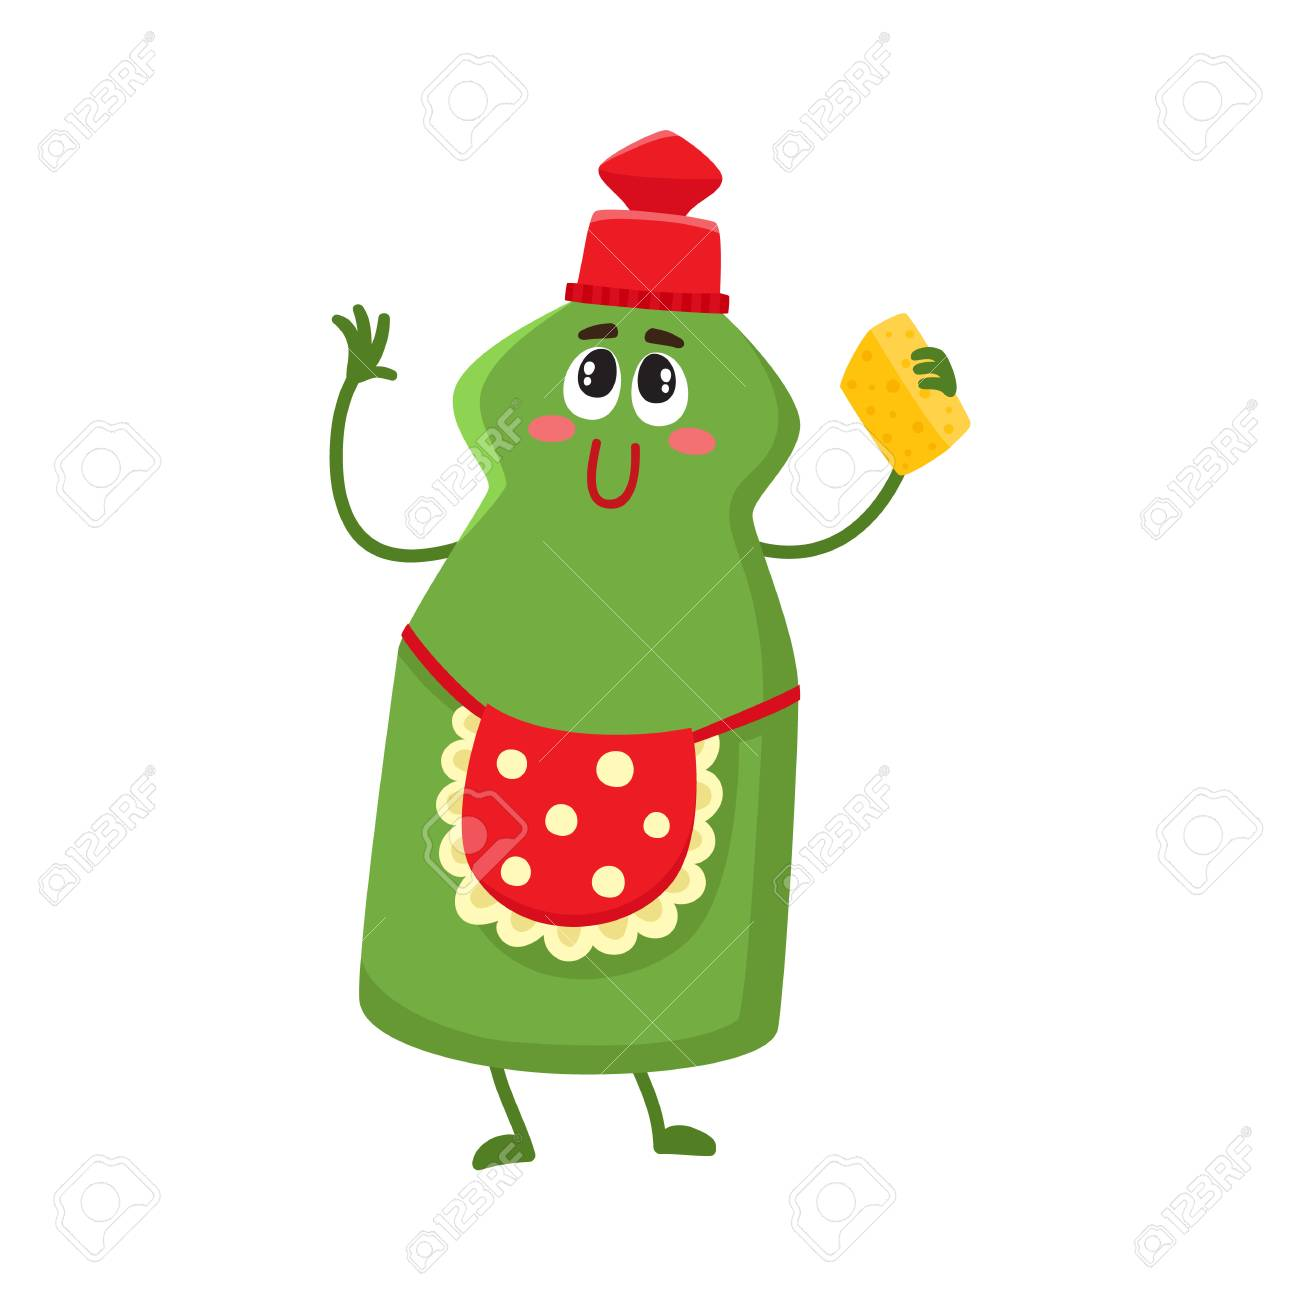 Funny dish washing character with smiling human face and cleaning